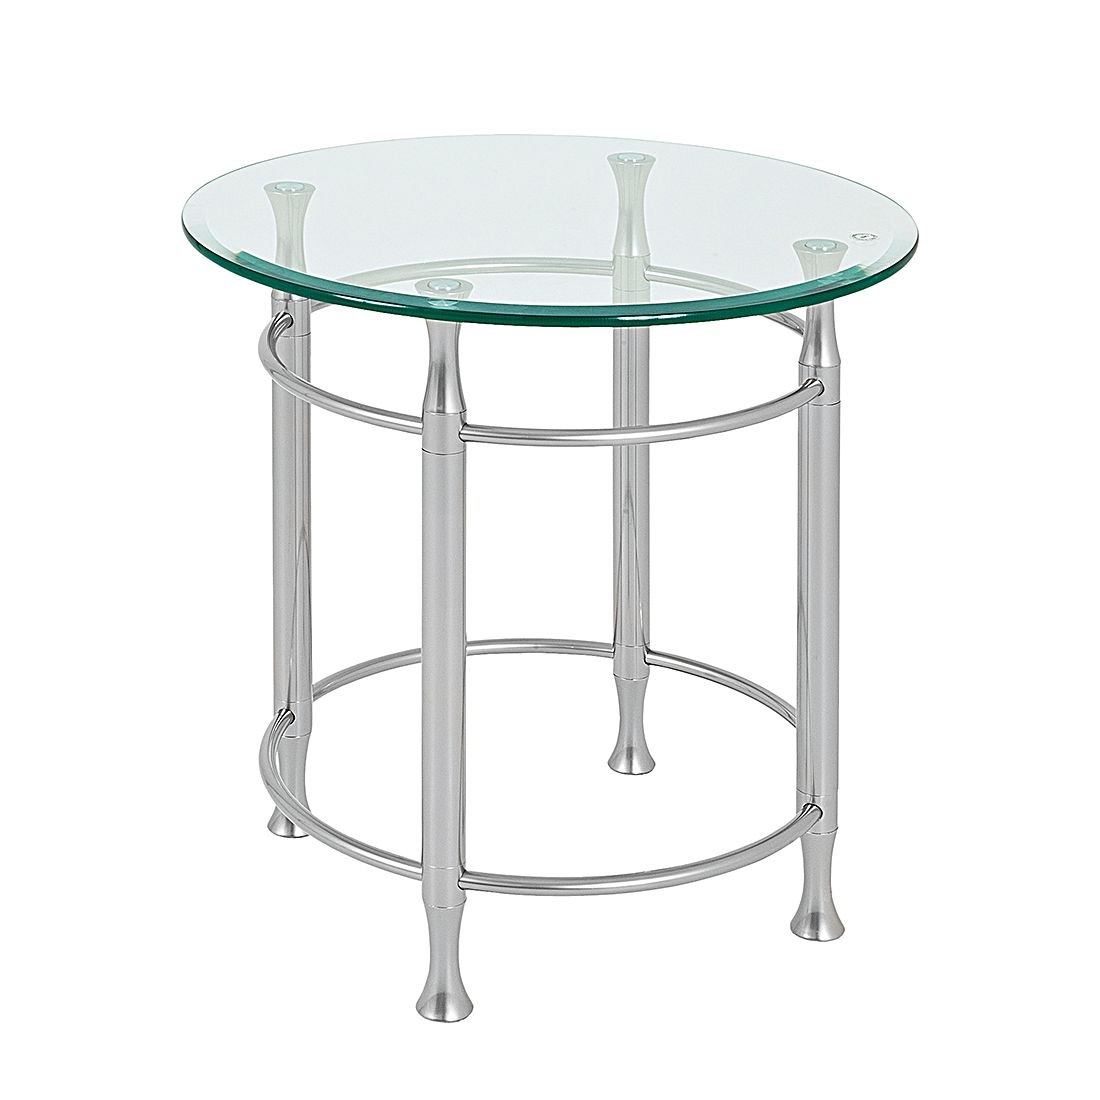 Table d'appoint Vienne - Rond - Aspect aluminium, Home Design